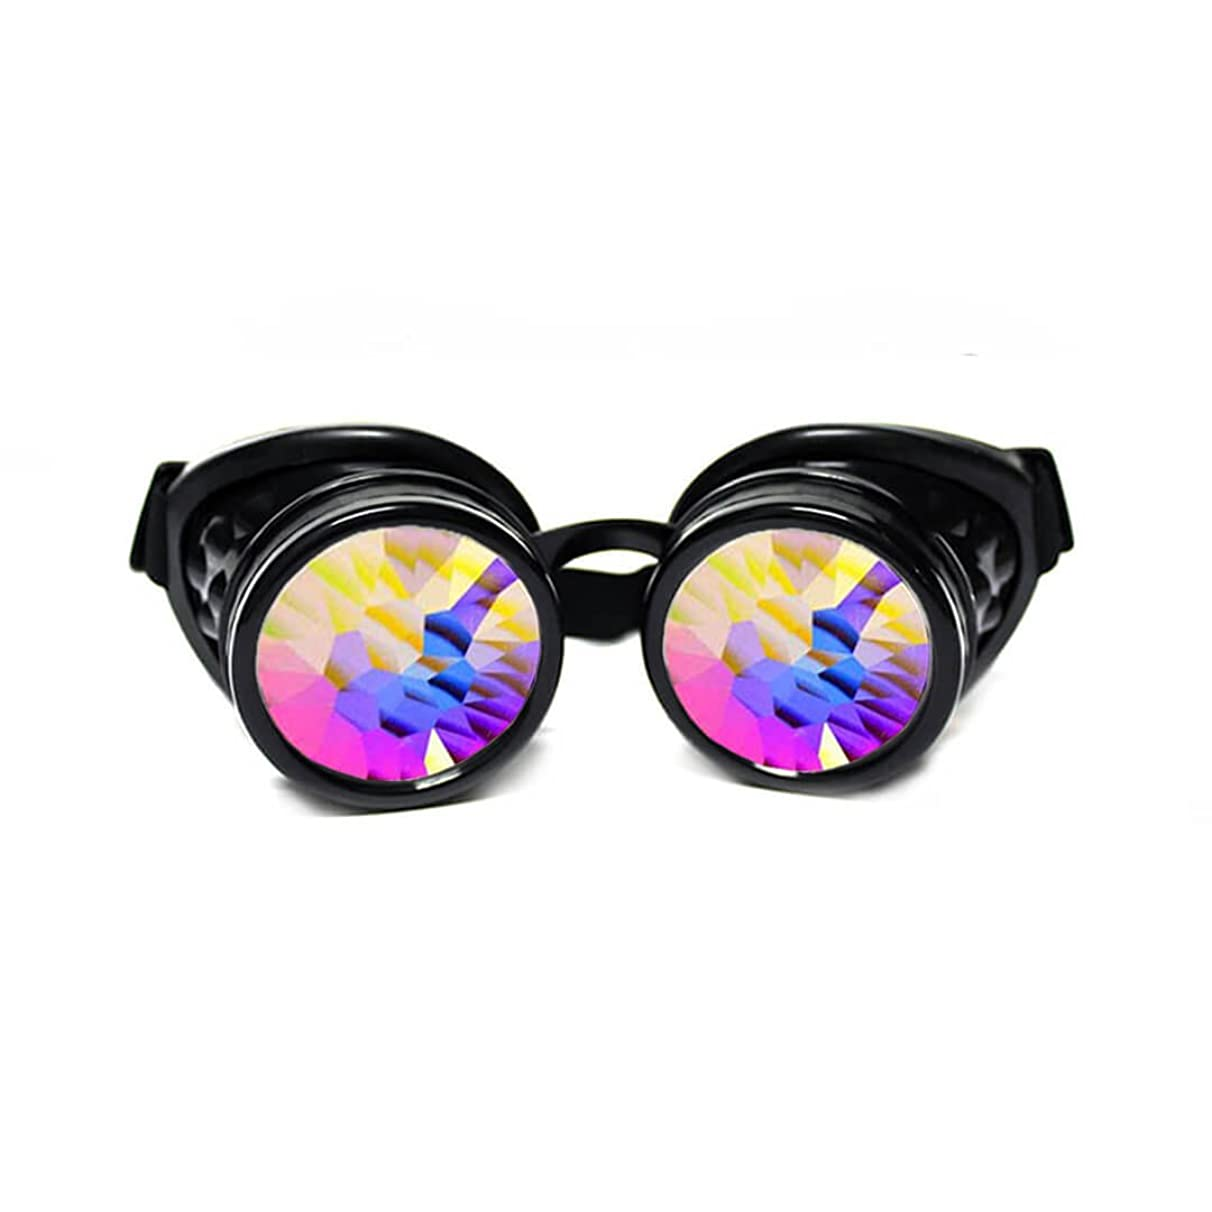 GloFX Padded Kaleidoscope Goggles - Prism Steampunk Cyber Real Crystal Rainbow Lenses